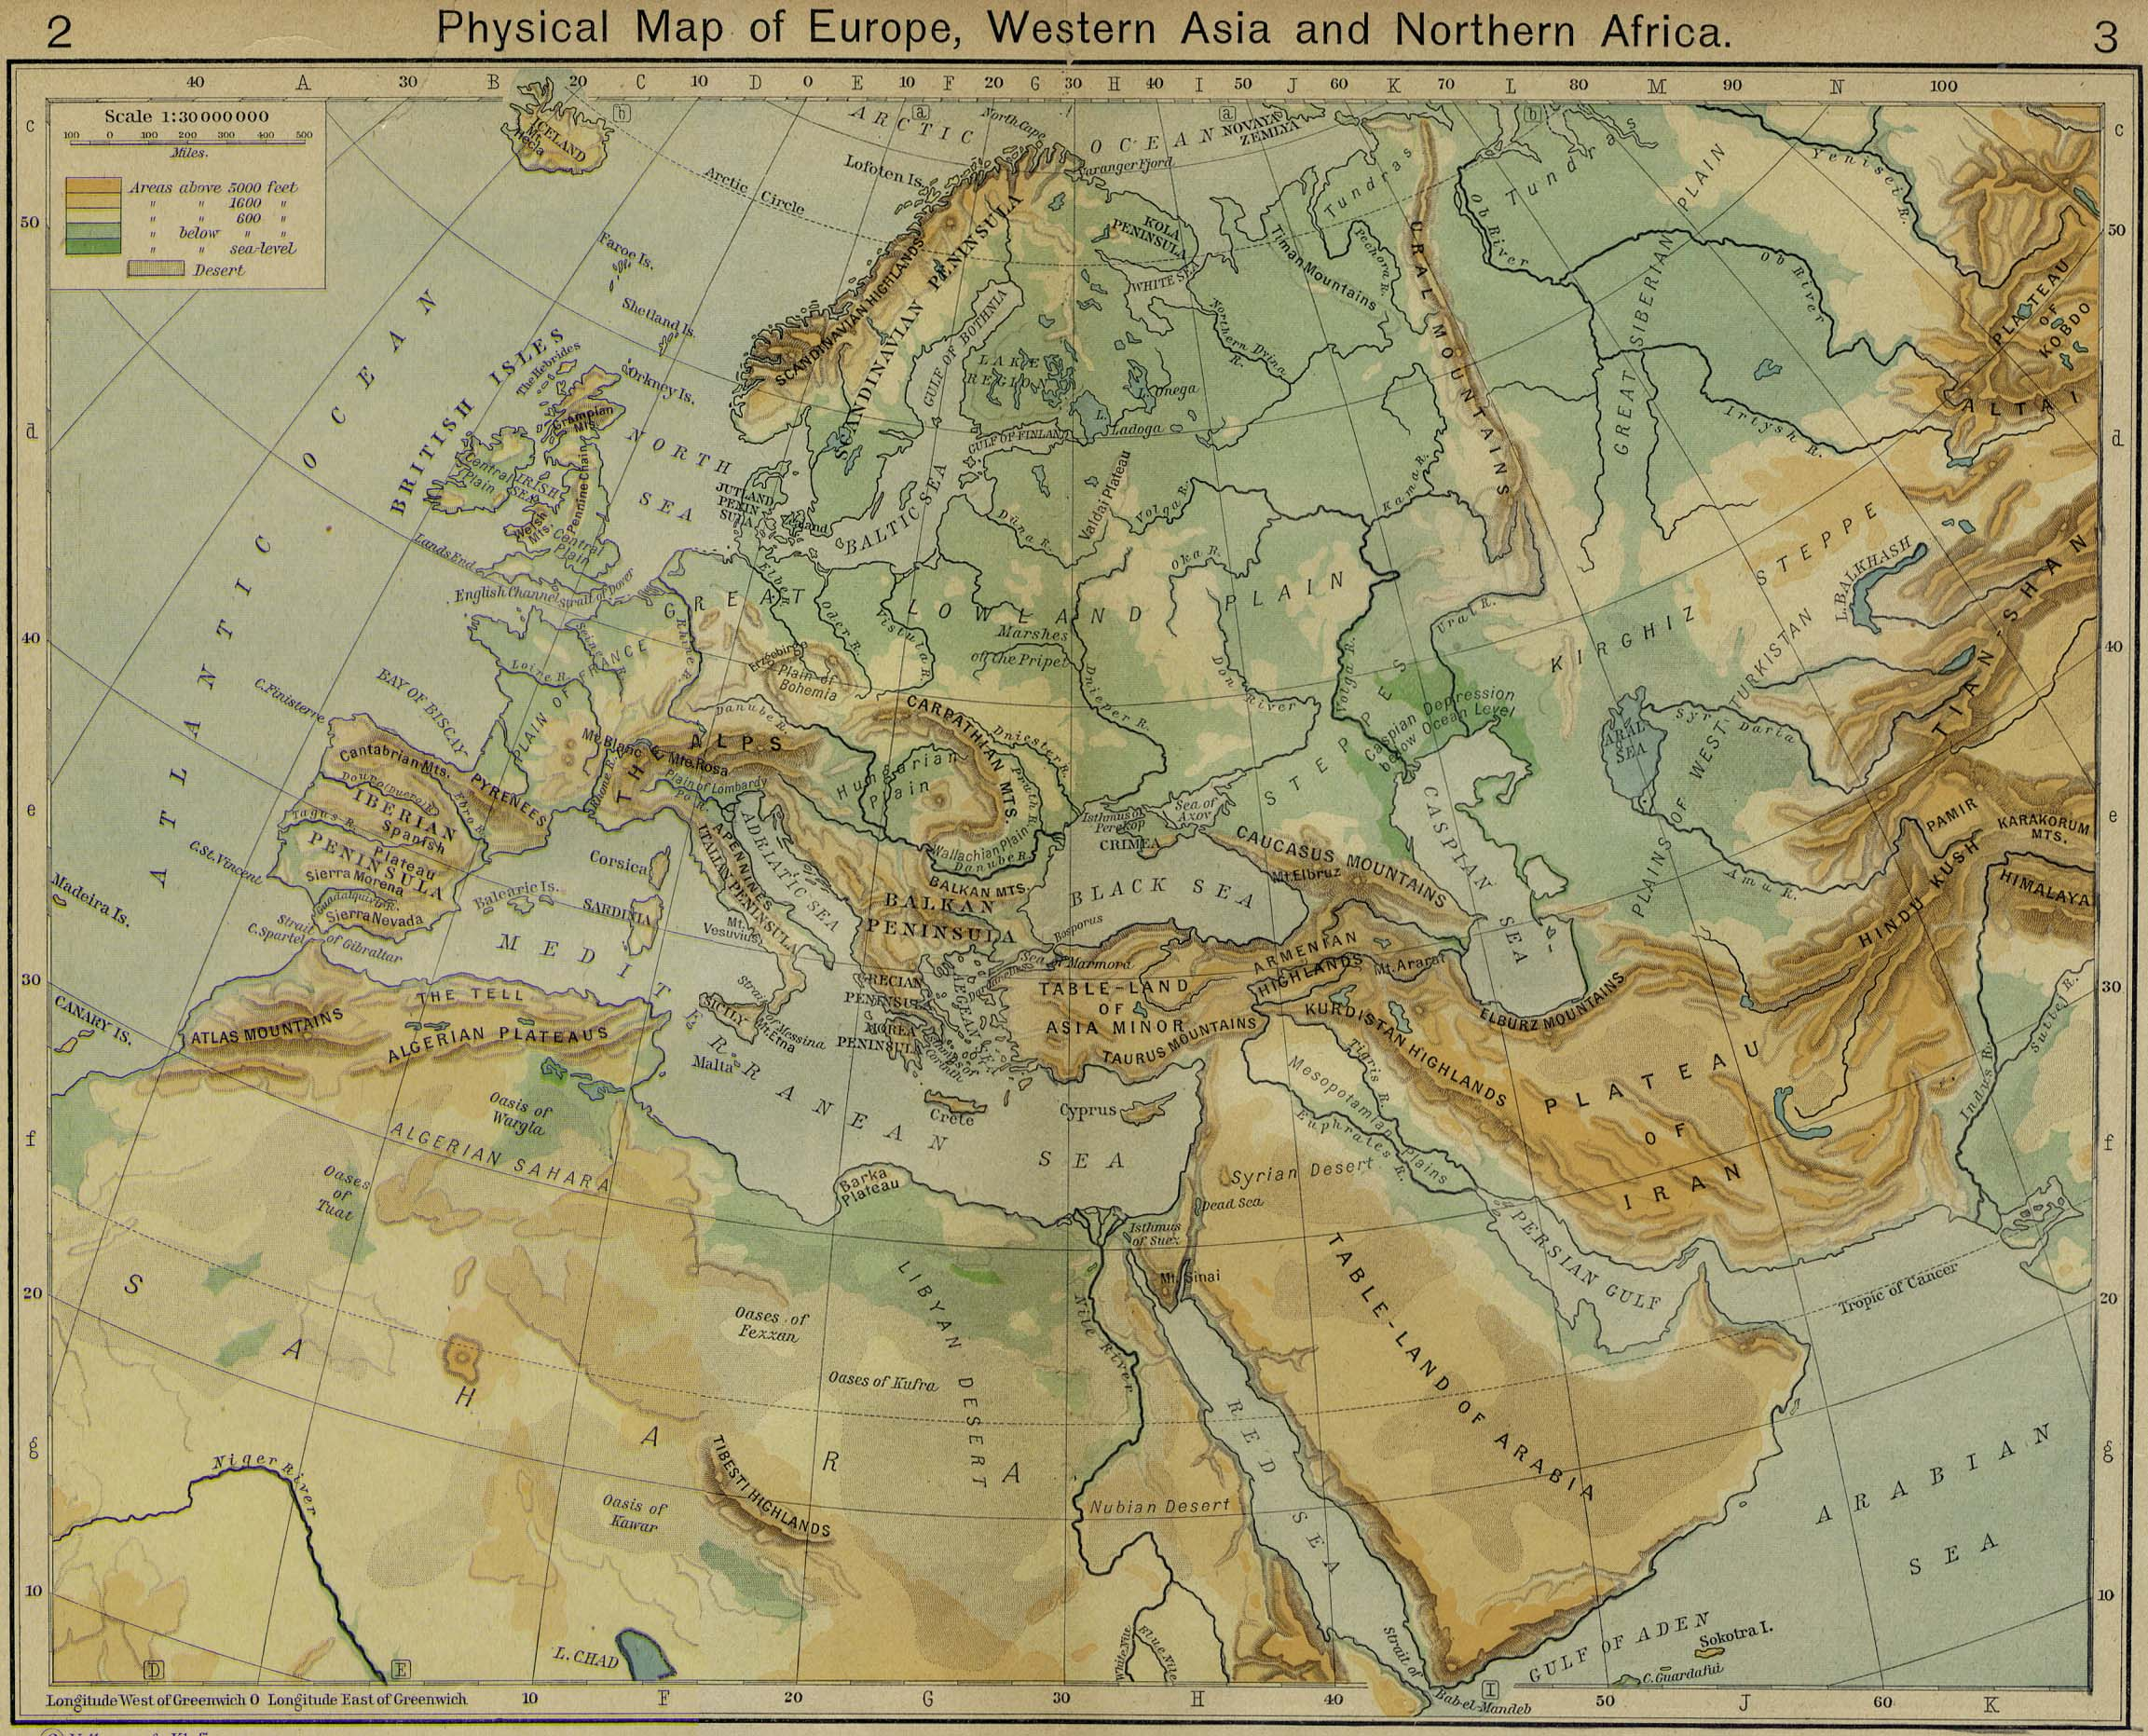 North West Asia Map.Physical Map Of Europe Western Asia And Northern Africa